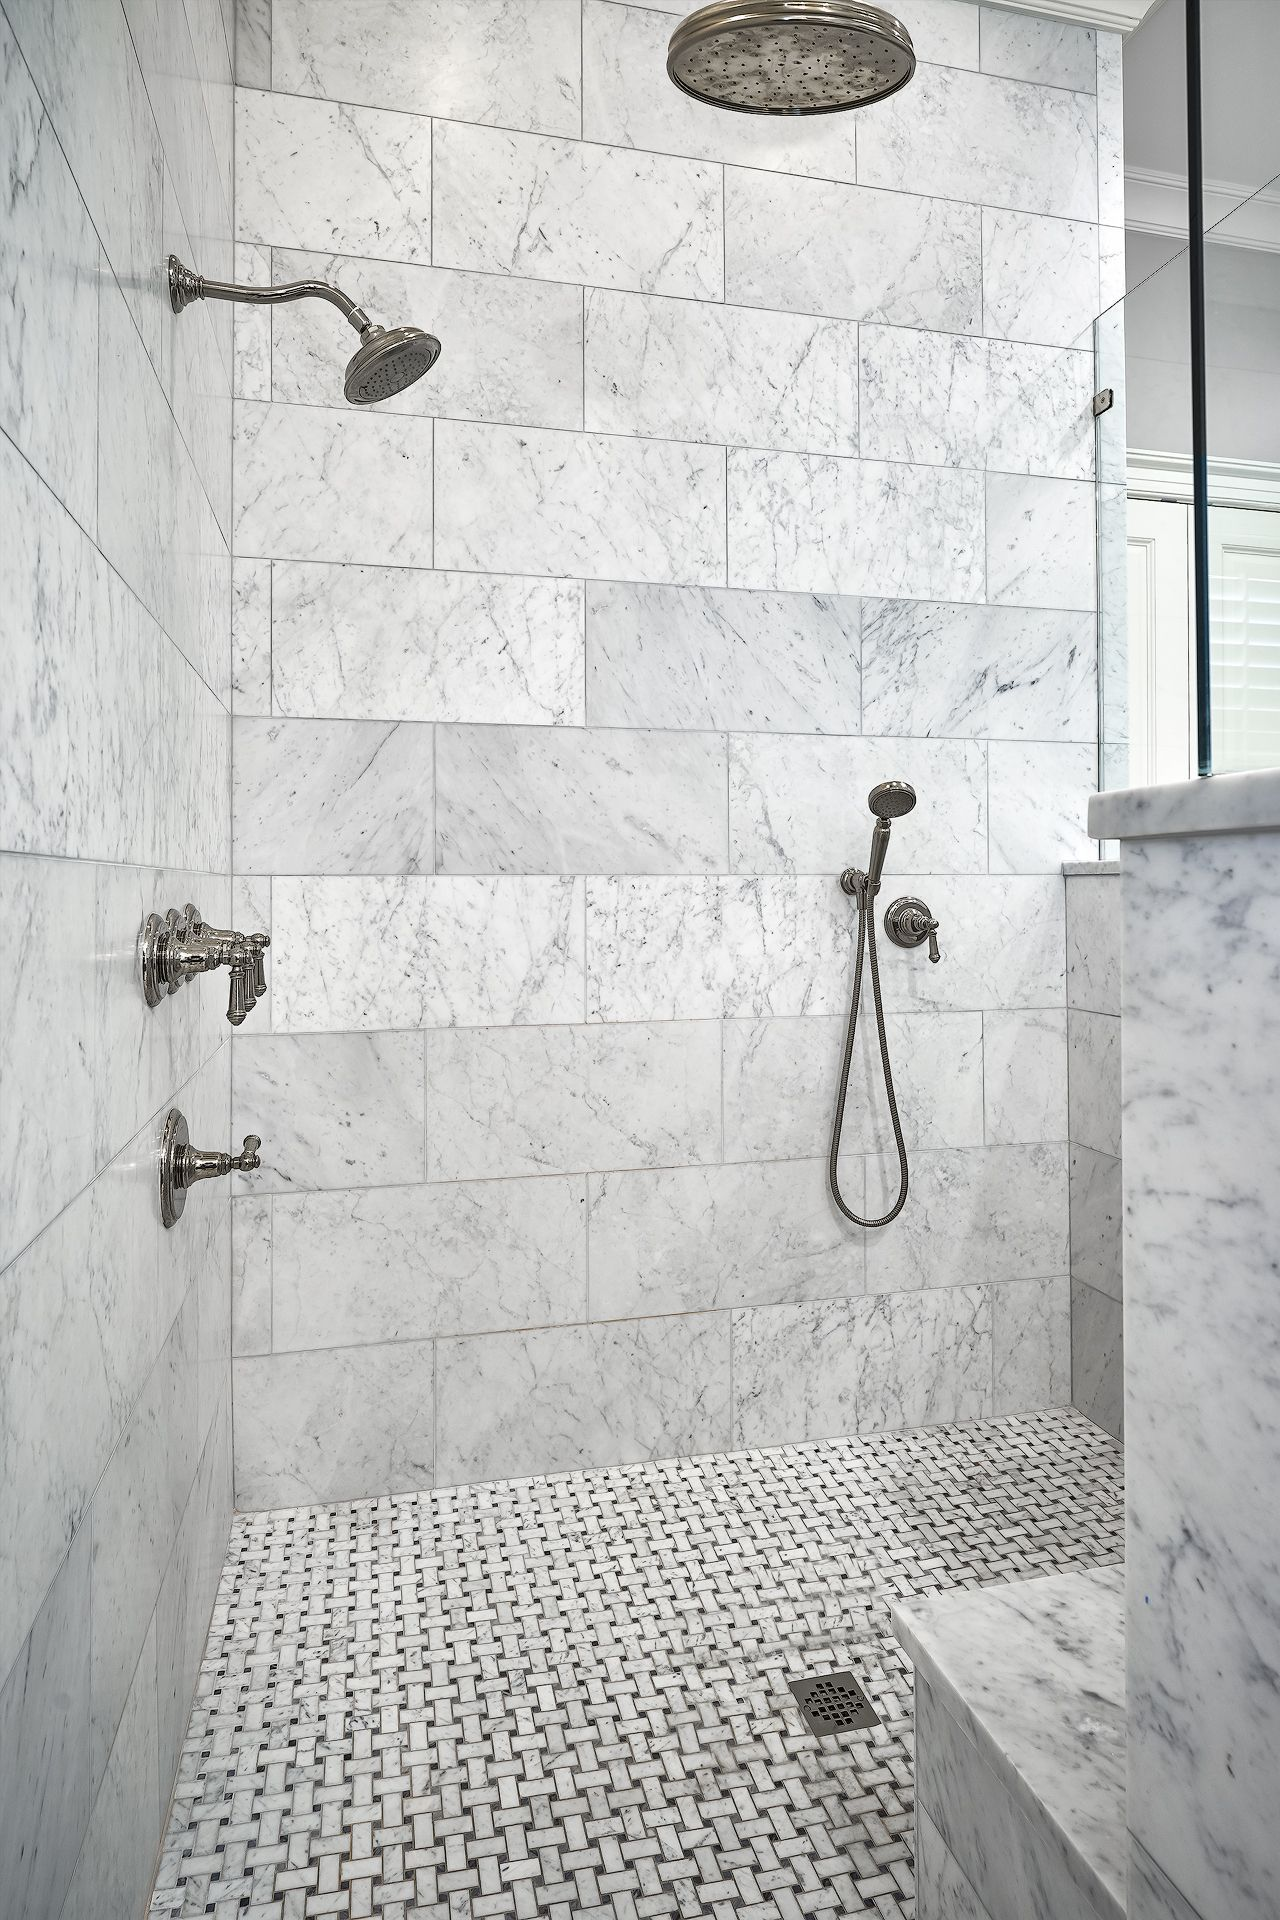 Awesome 43 Extraordinary Italian Shower Design Ideas. More at https://decoratrend.com/2018/11/16/43-… | Small bathroom tiles, Master bathroom shower, Shower remodel